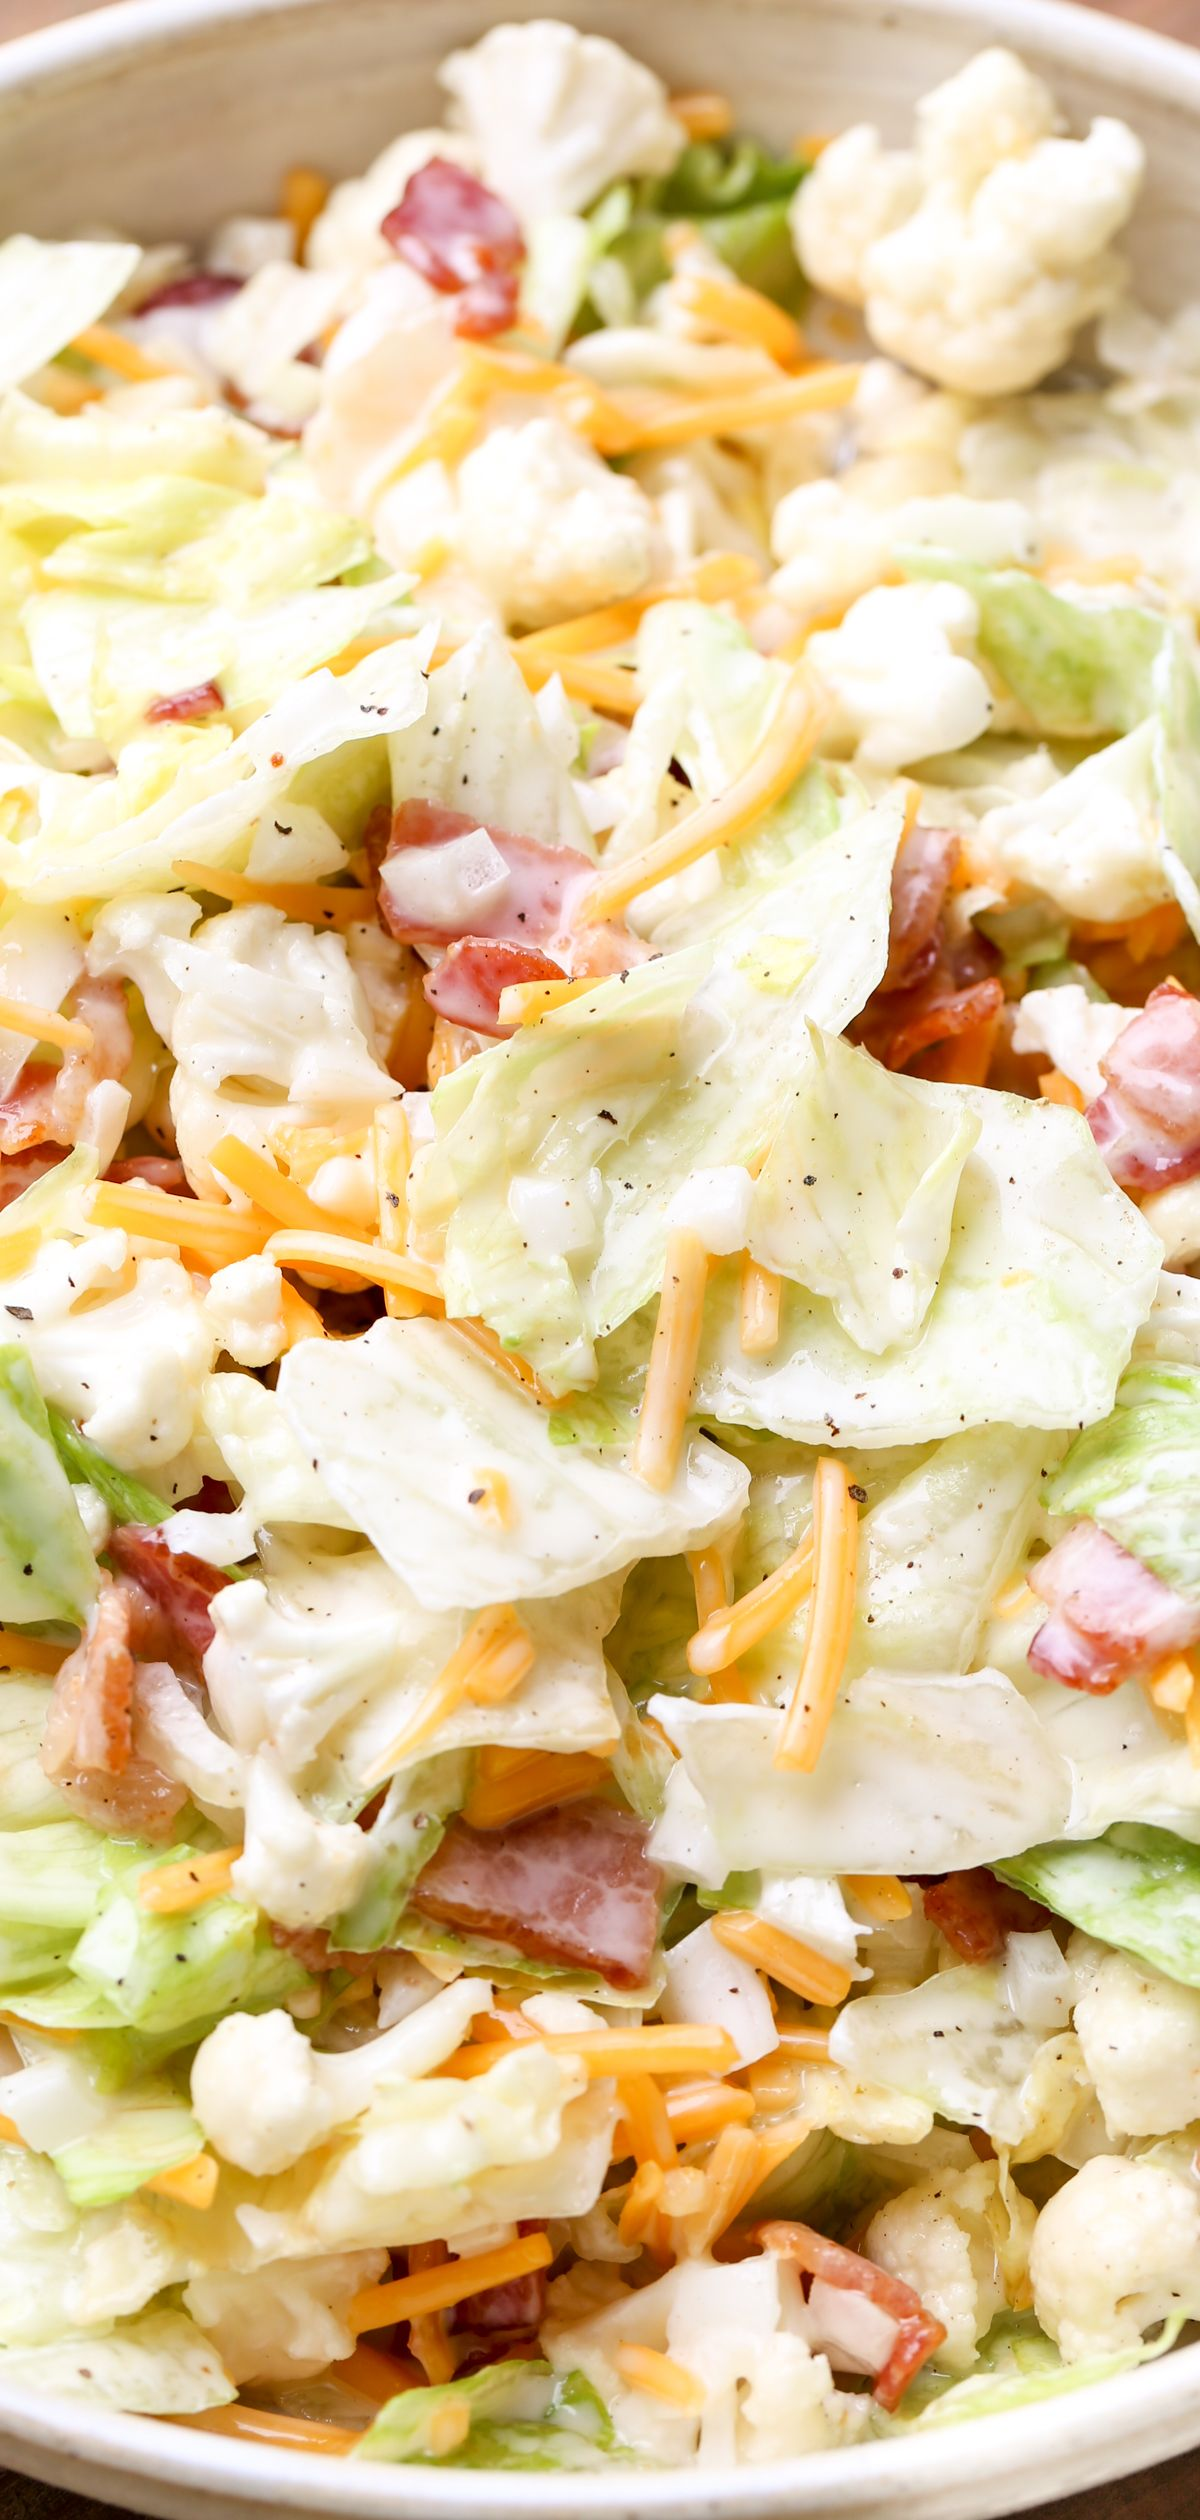 Salad with lettuce, cauliflower, and bacon. Delicious ...